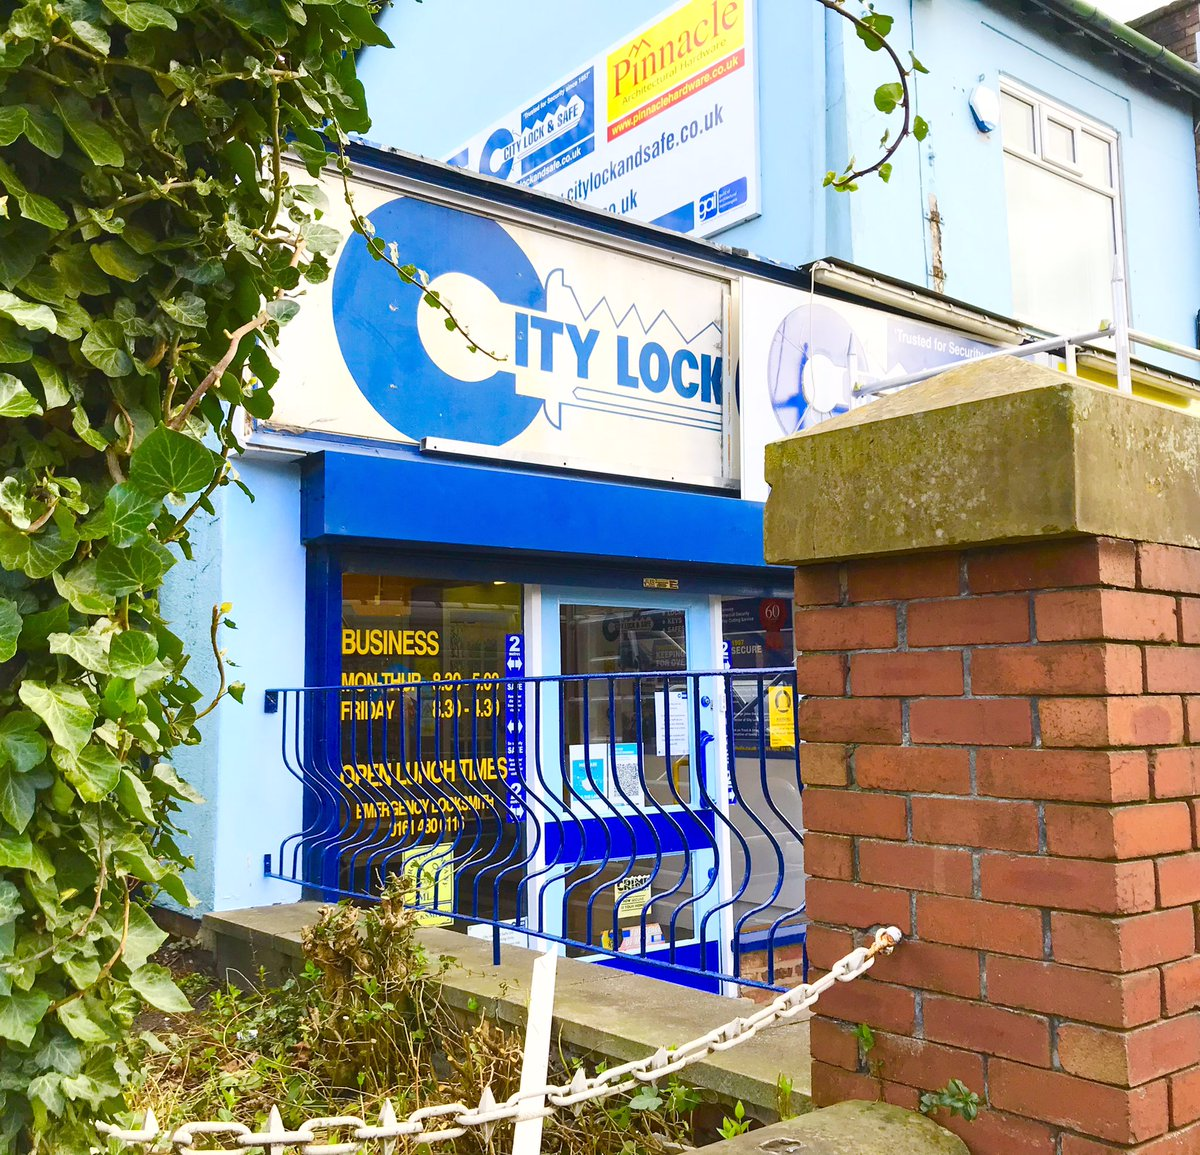 CityLockSafeLtd photo